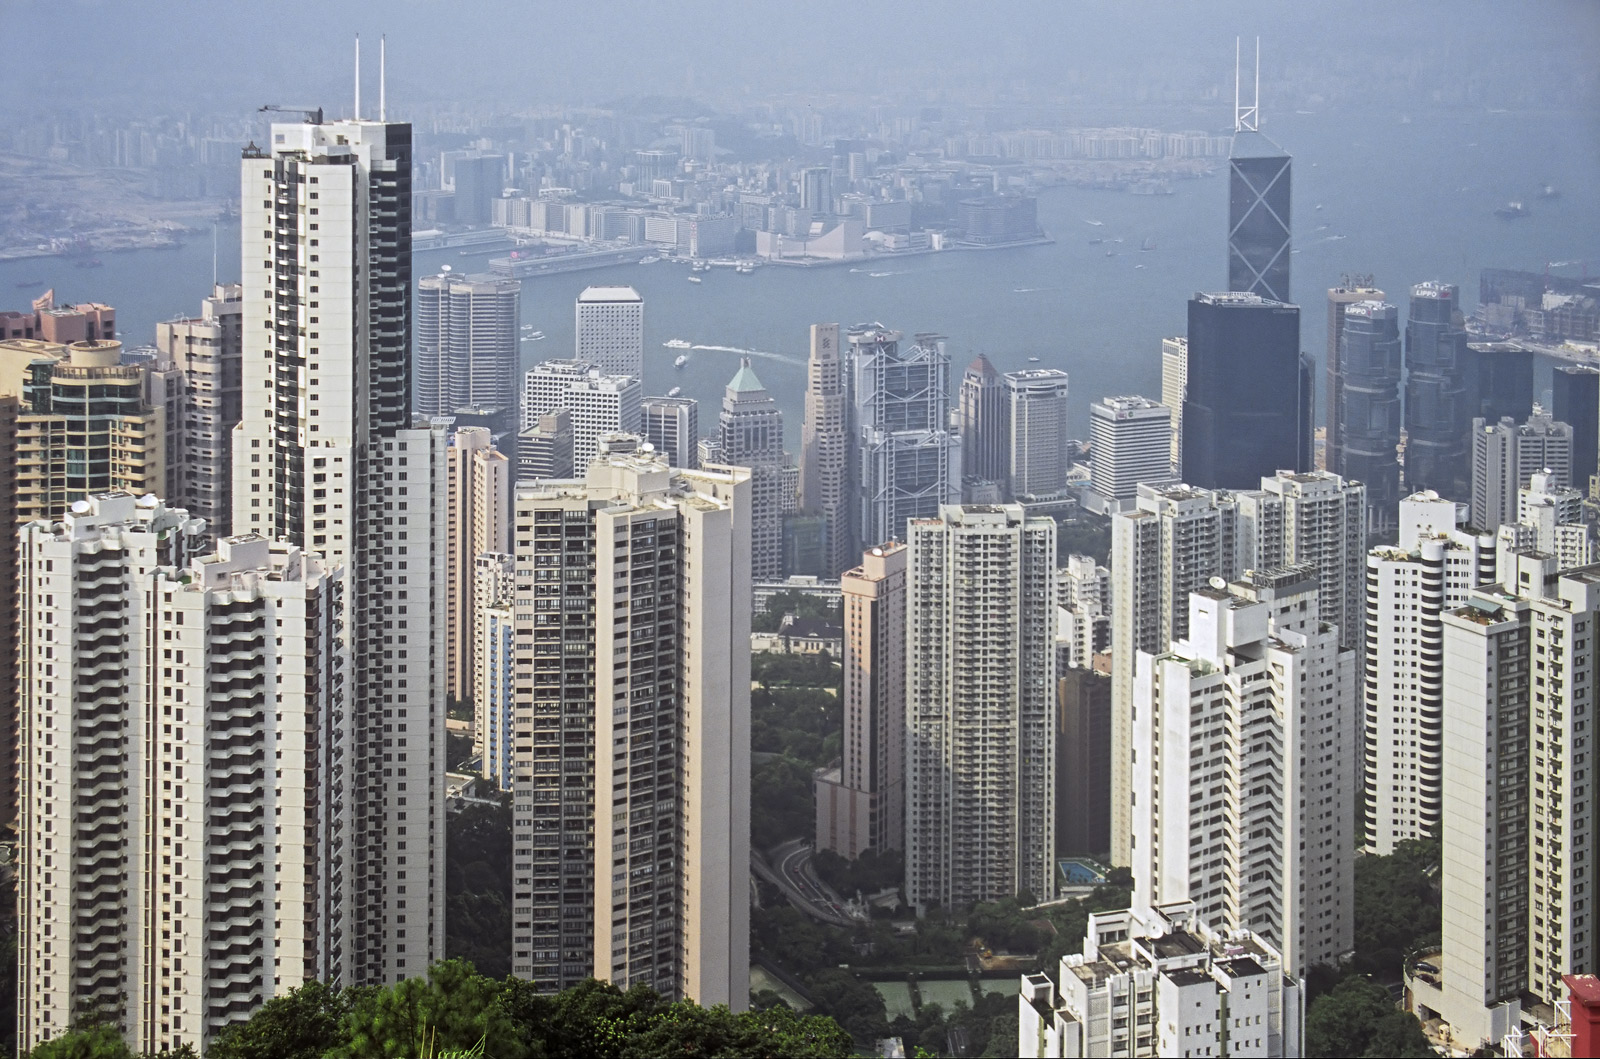 Its pretty rare that the Peak overlooking the city of Hong Kong is clear enough to get this elevated view. The slight haze probably...